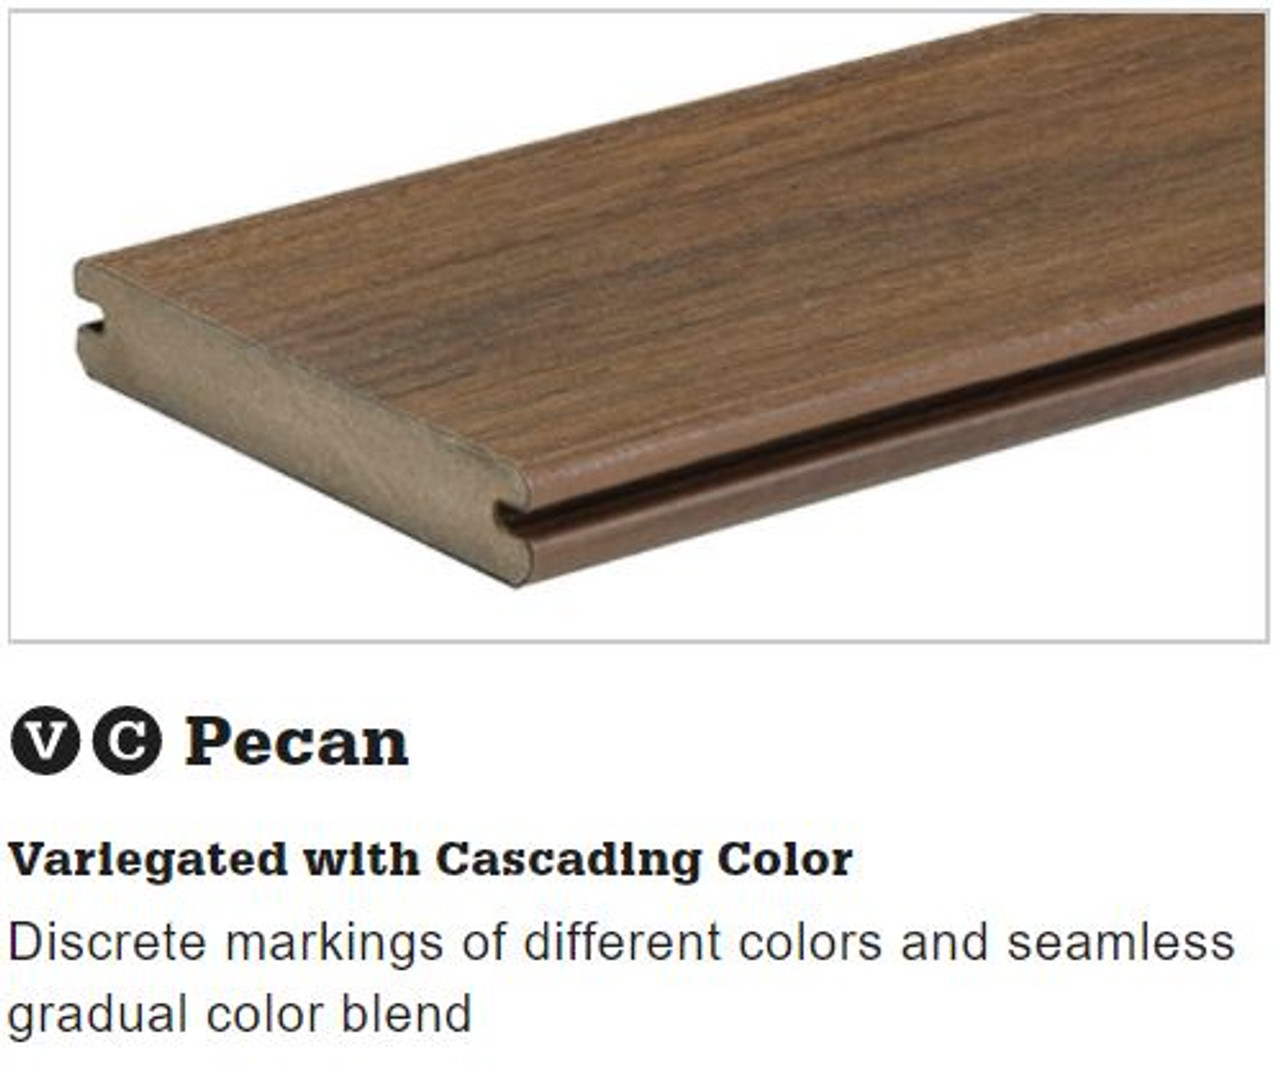 TimberTech Legacy Grooved Decking in Pecan